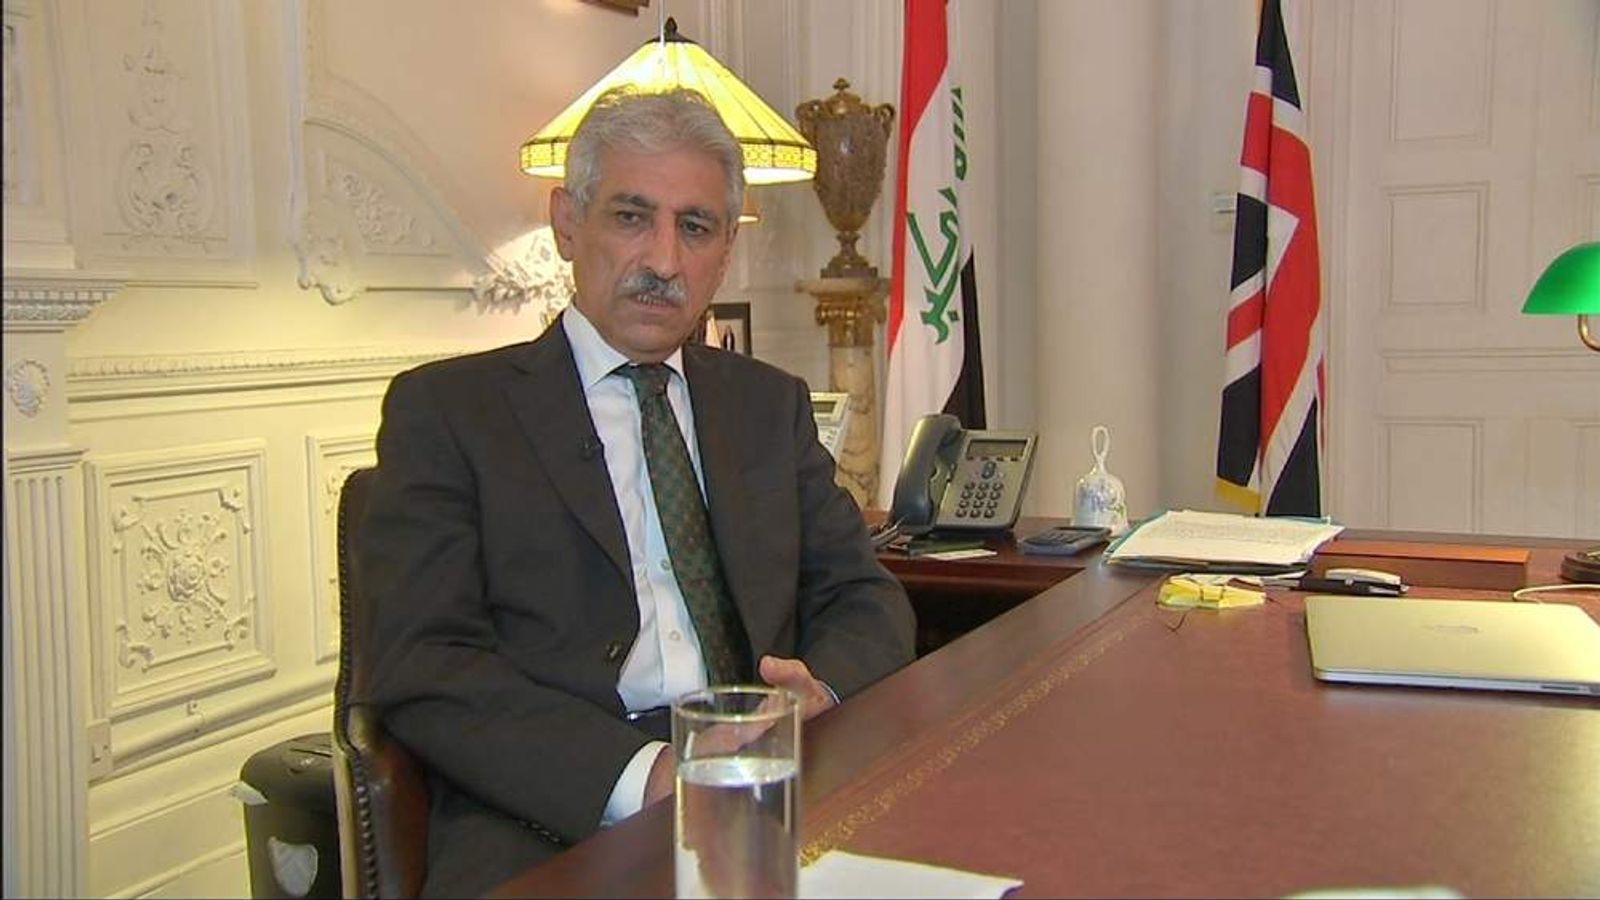 Iraqi Ambassador to the UK Faik Nerwayi